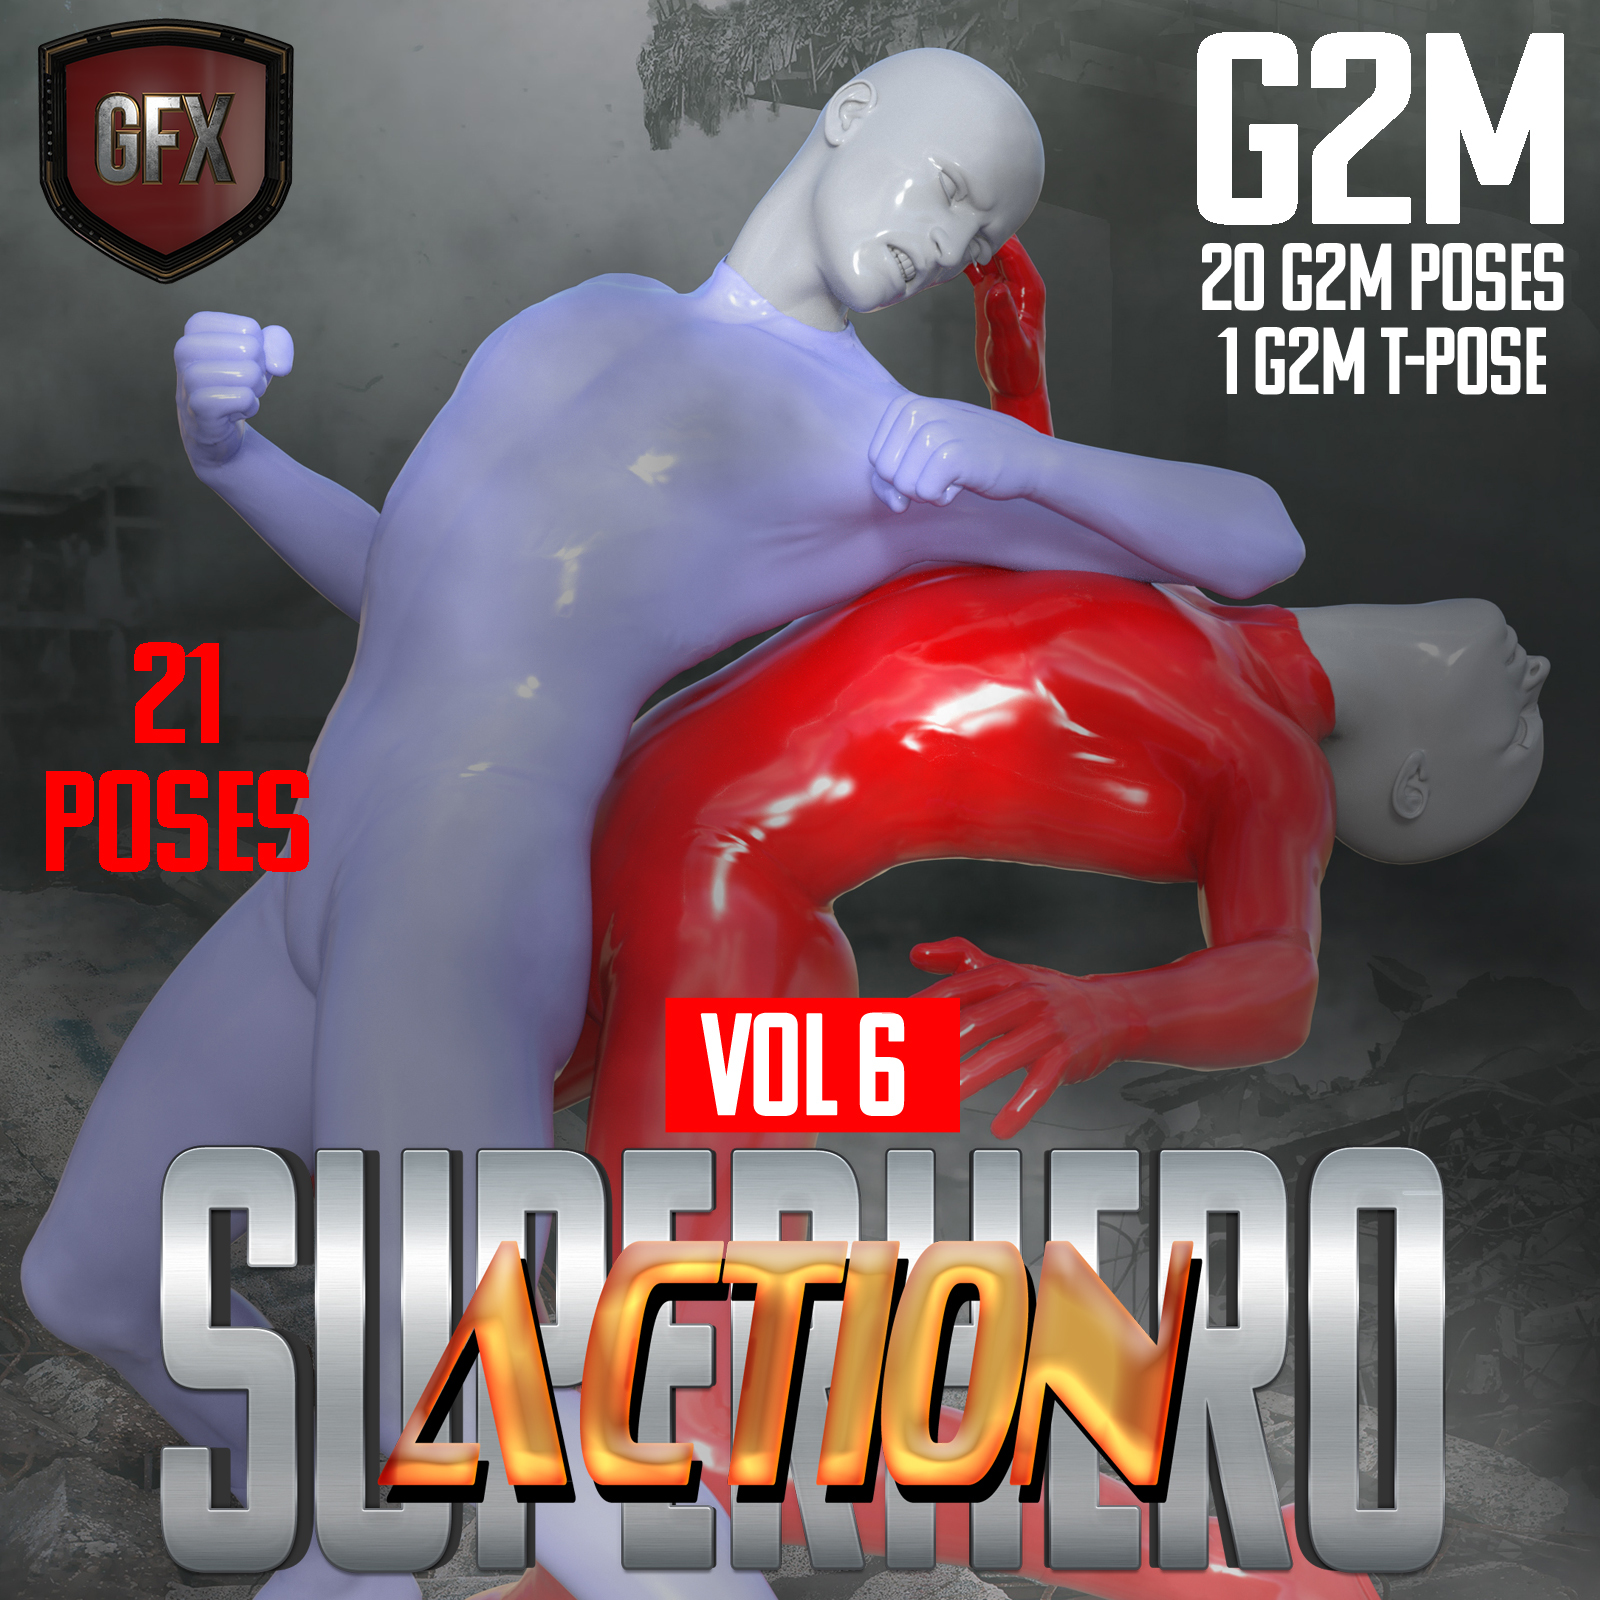 SuperHero Action for G2M Volume 6 by GriffinFX